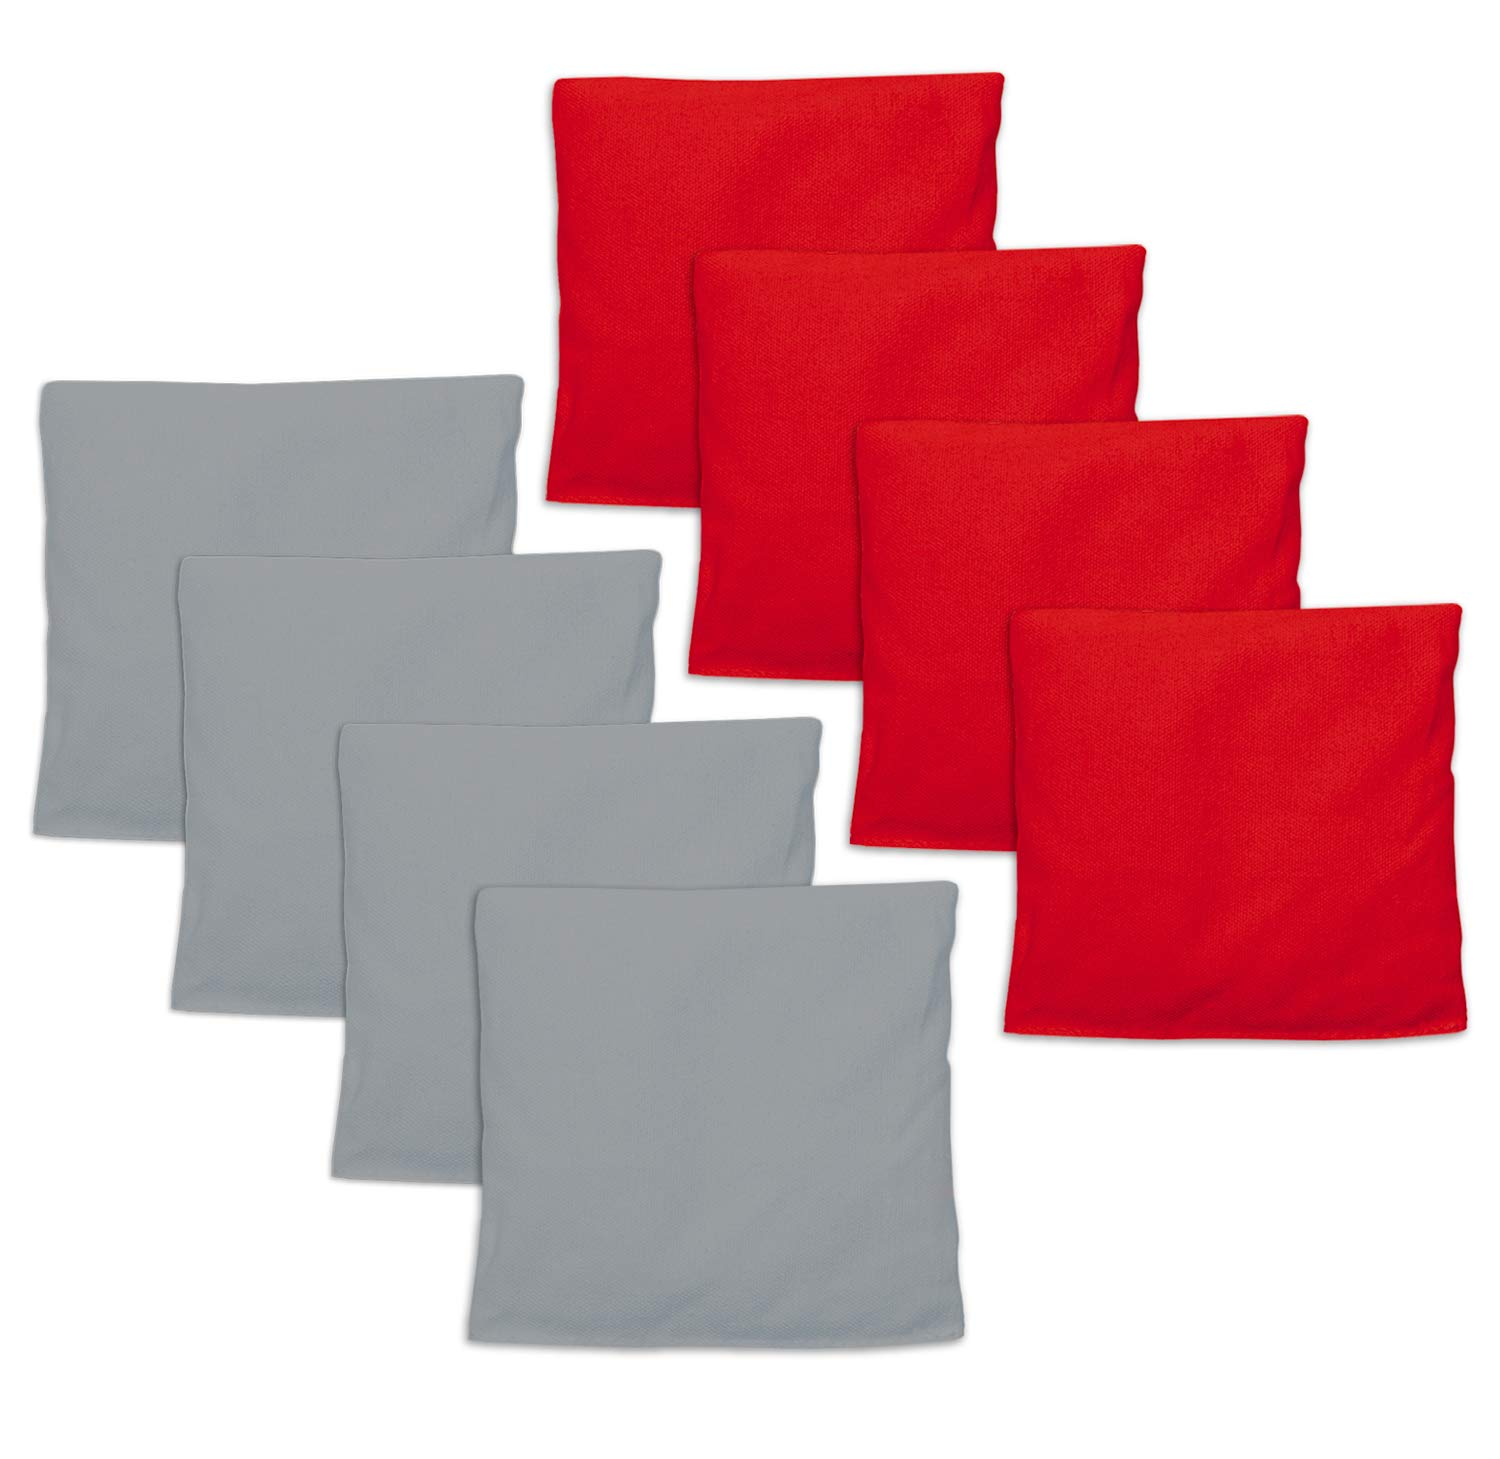 Weatherproof Duck Cloth Cornhole Bags - Set of 8 Red & Gray Bean Bags for Corn Hole Game - Regulation Size & Weight - Made with Corn-Shaped Synthetic Corn